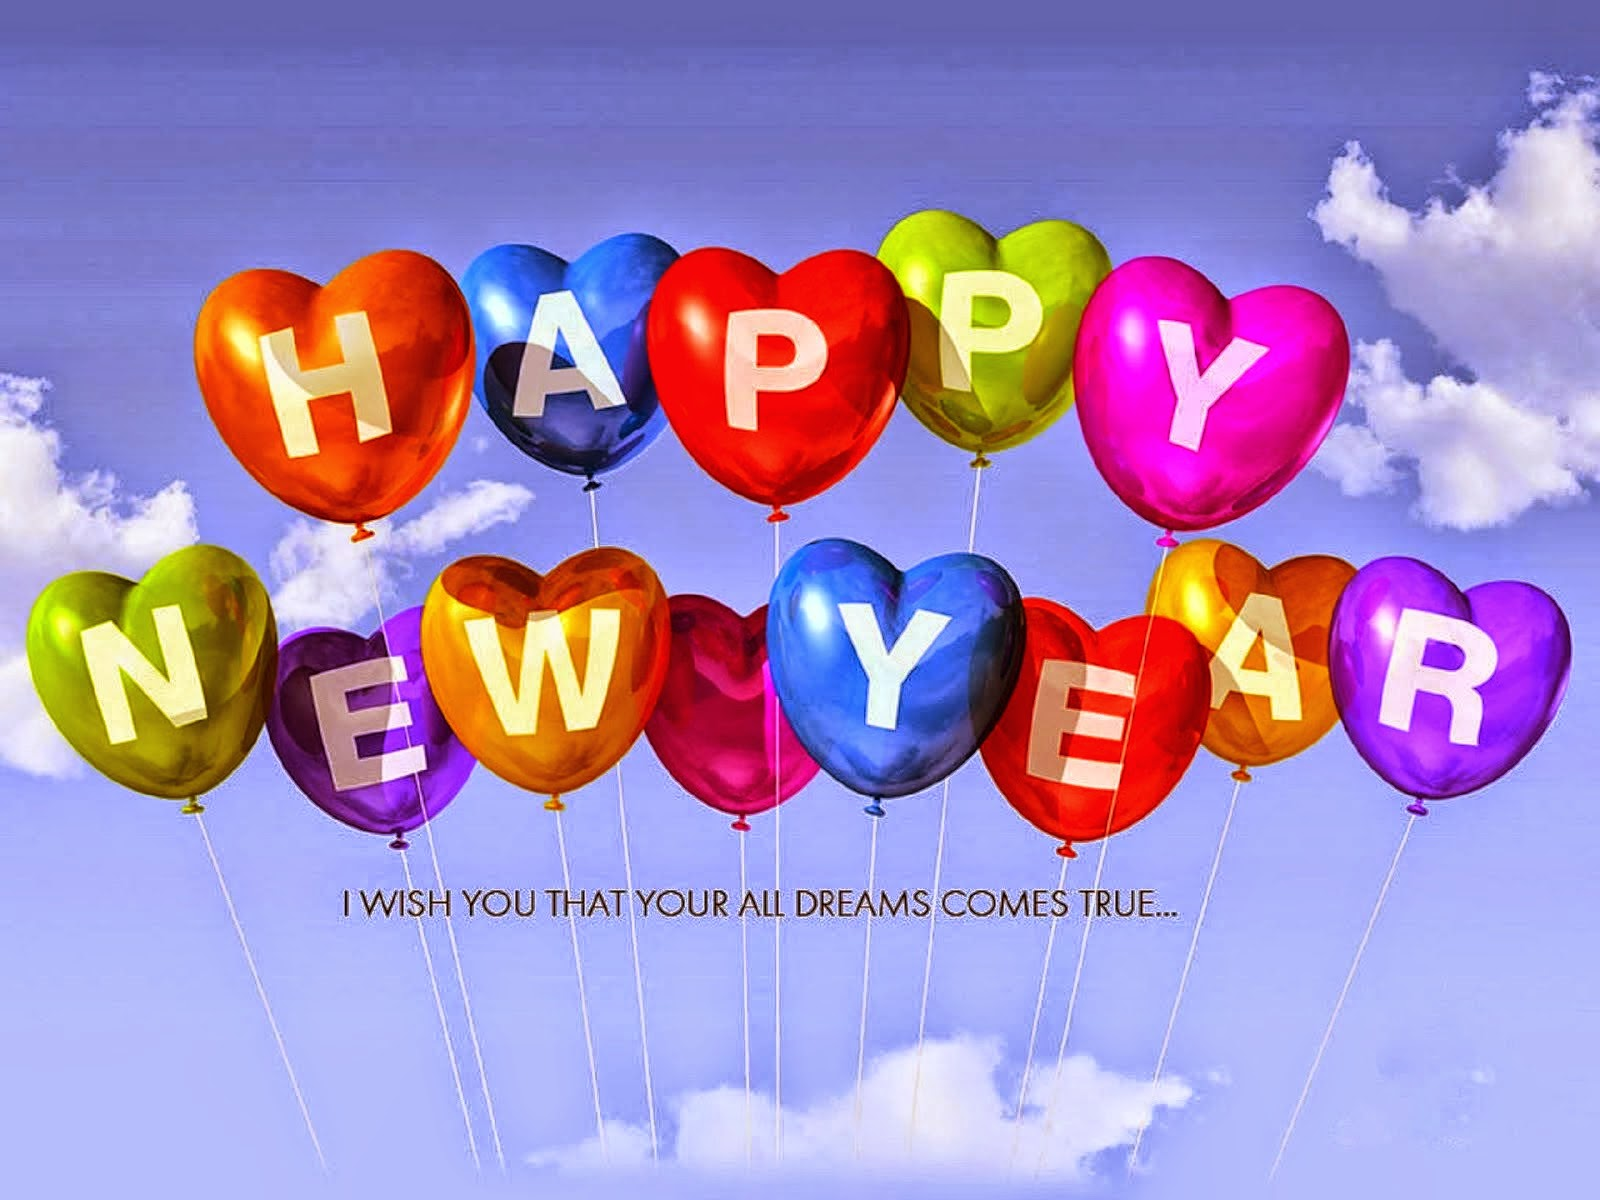 Free download Happy New Year 2016 HD Wallpapers Wishes